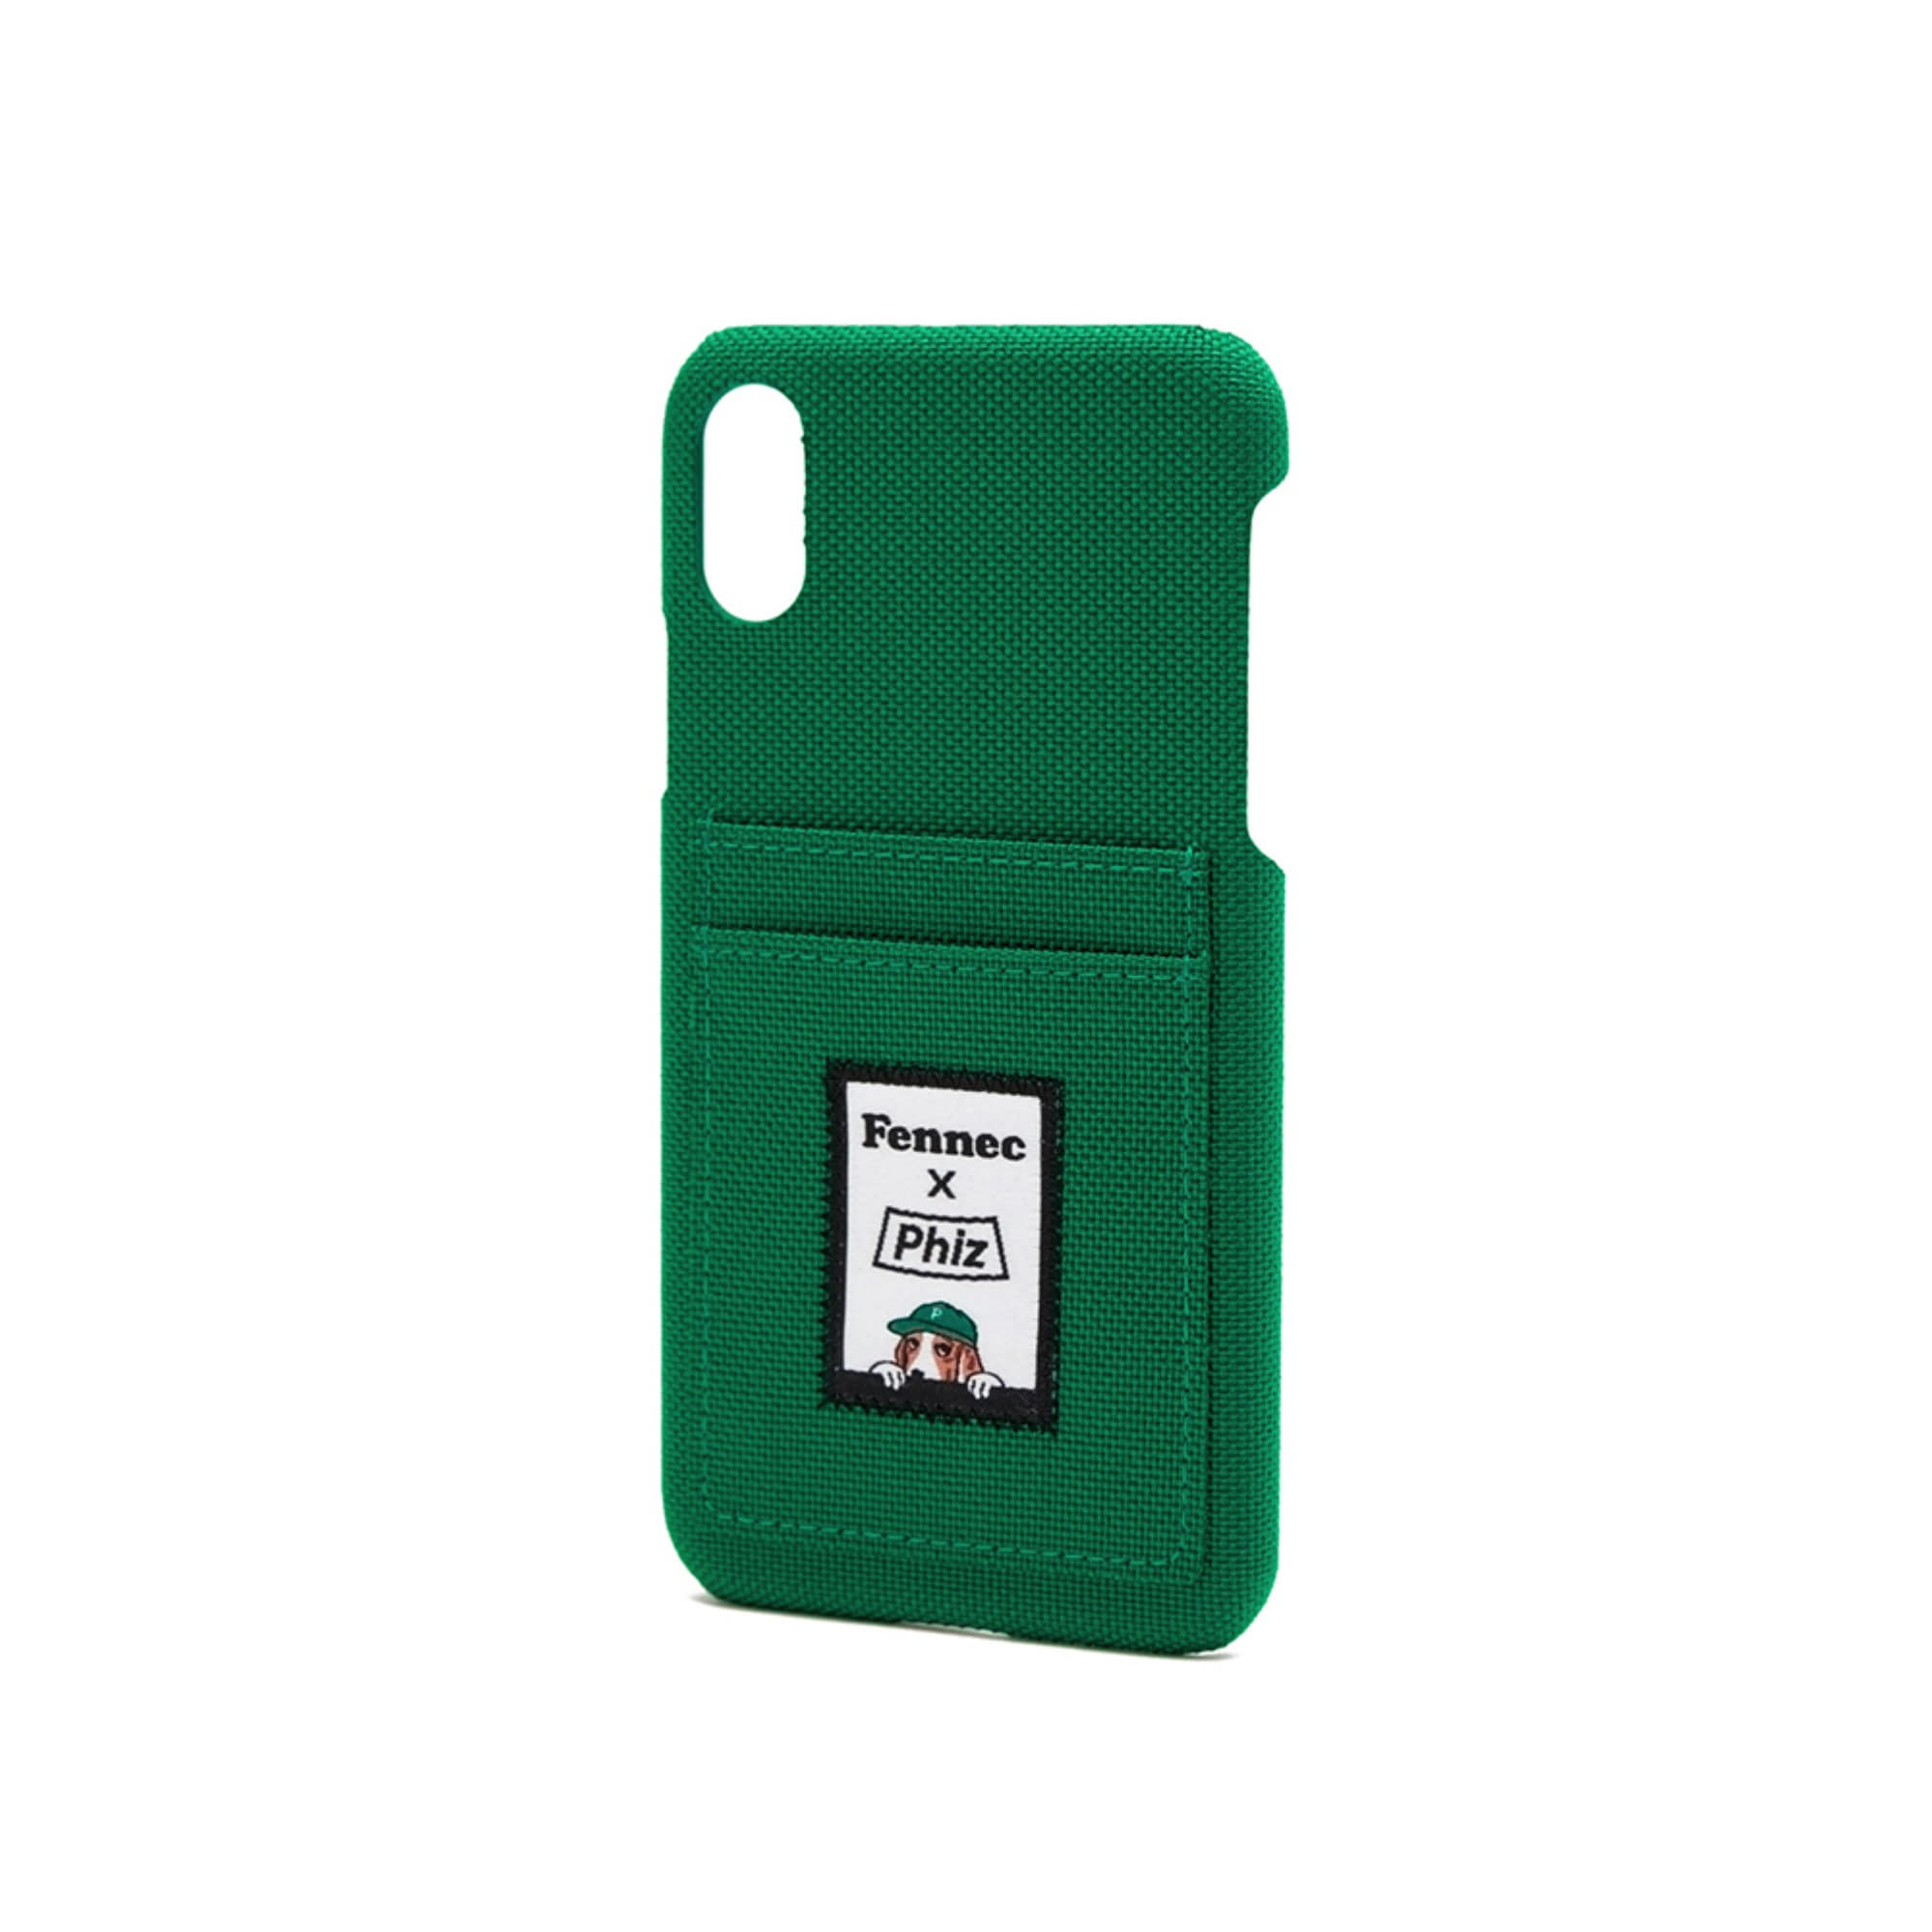 FENNEC X PHIZ C&S iPHONE X/XS CARD CASE - GREEN